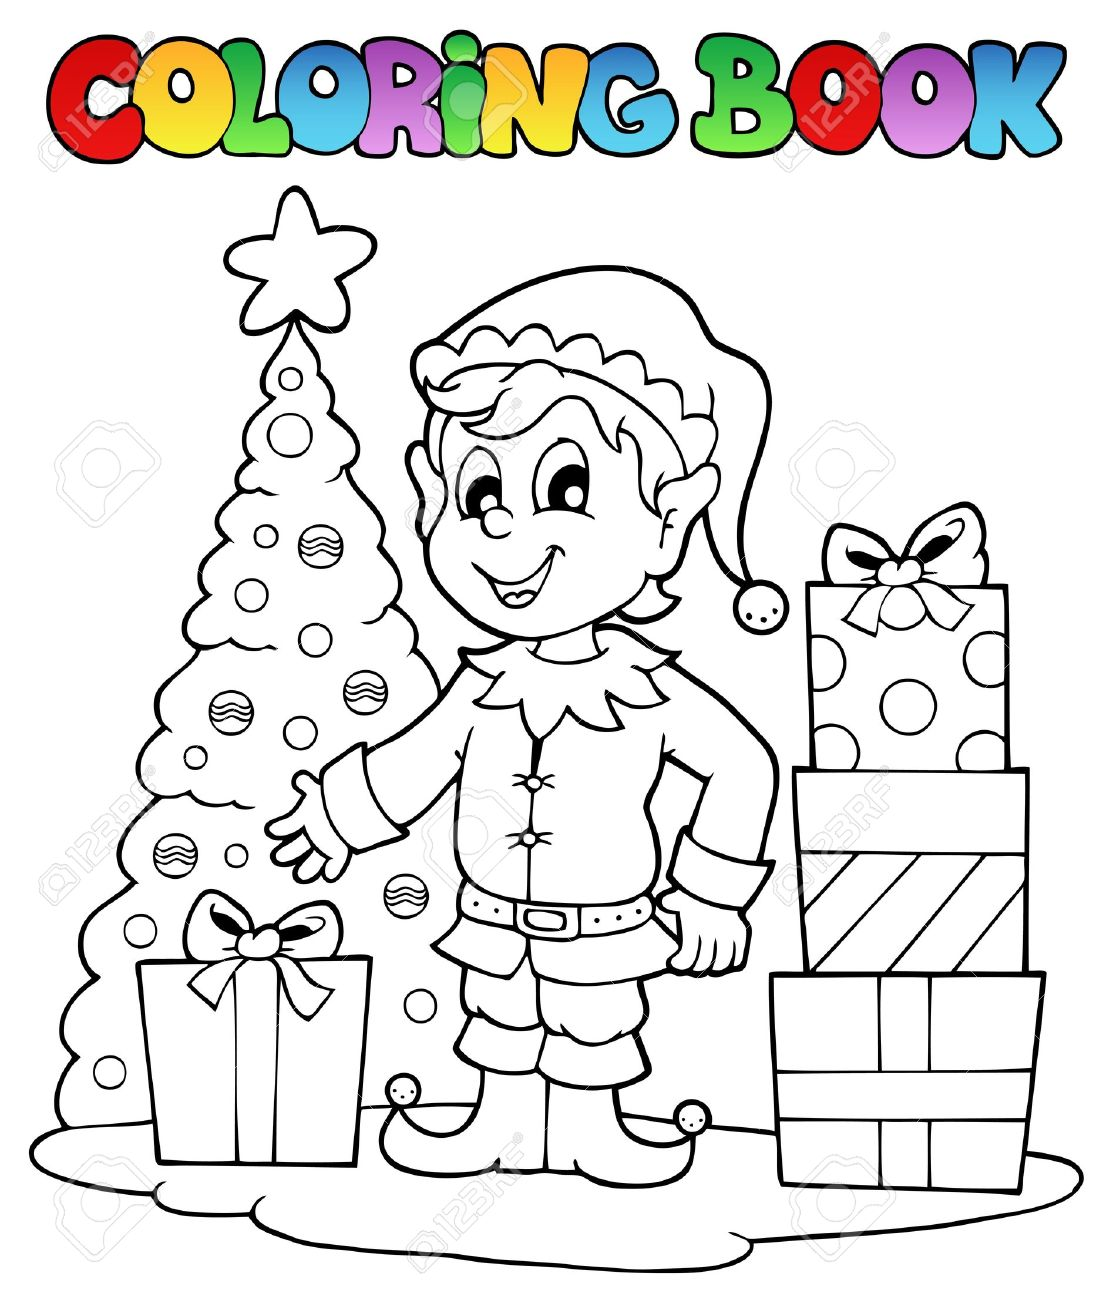 Coloring book pictures of elves - Coloring Book Christmas Elf Theme 1 Vector Illustration Stock Vector 16503895